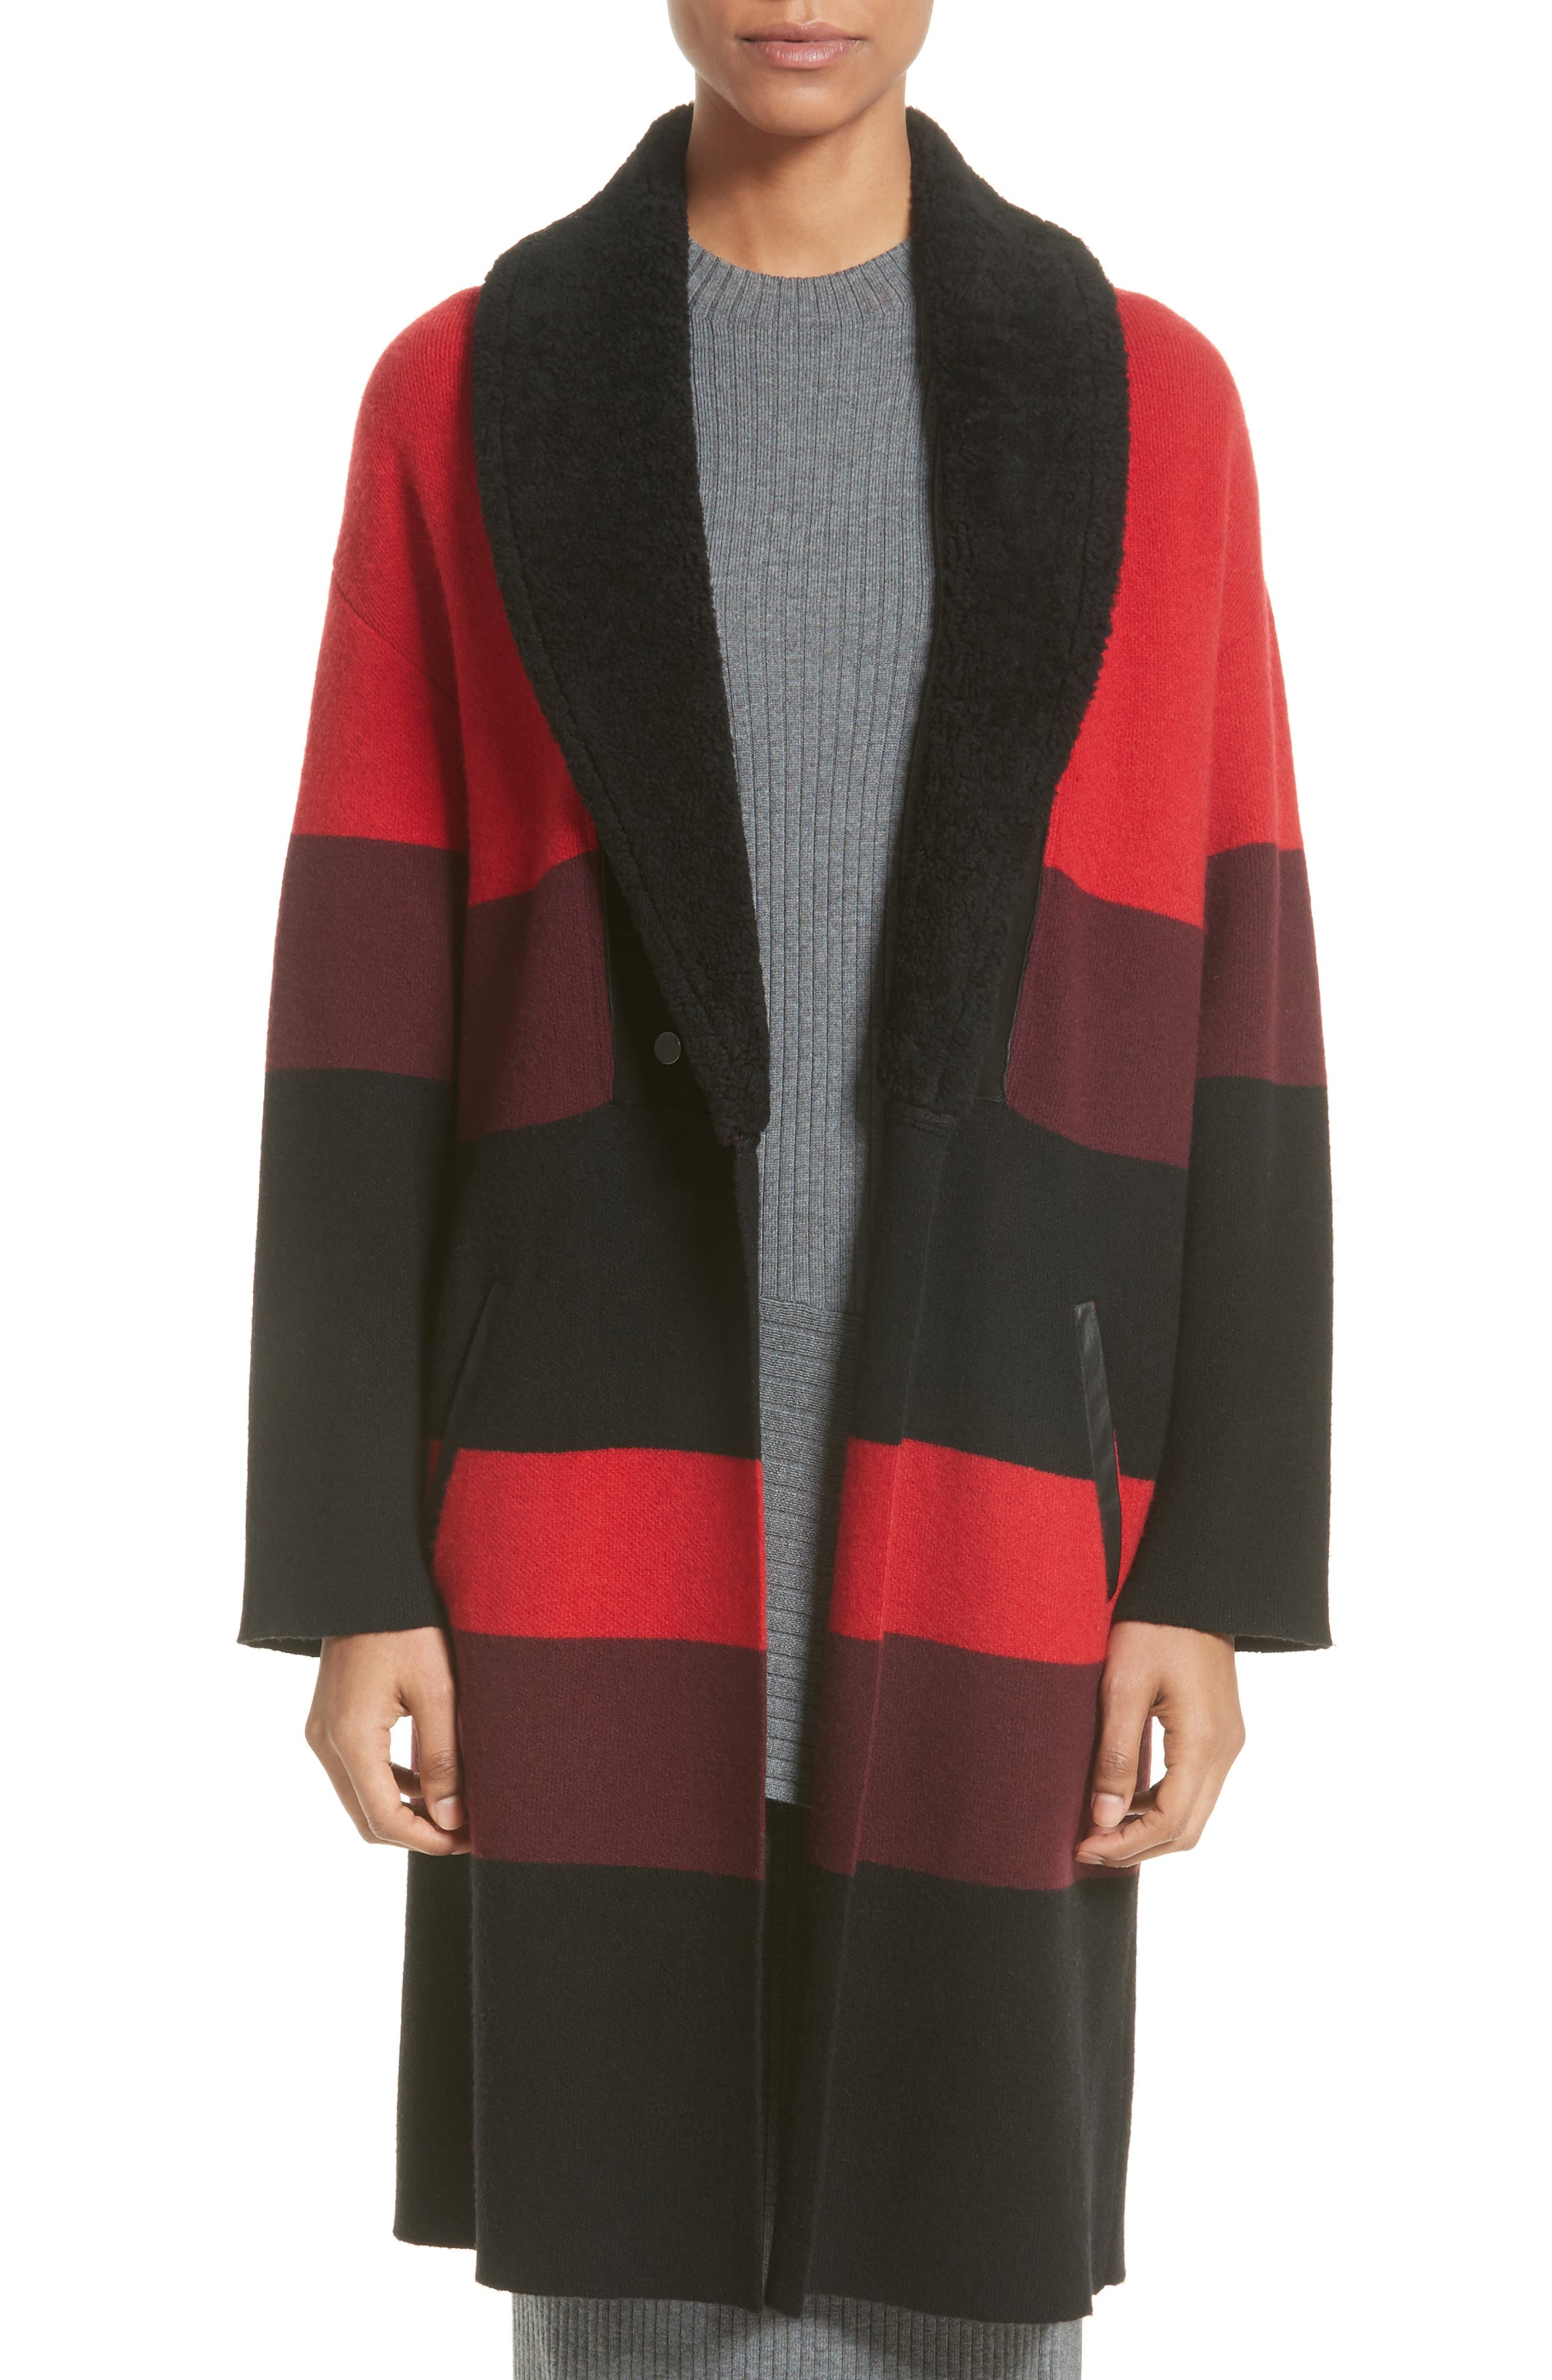 Double Knit Felted Wool Blend Coat with Genuine Shearling Collar,                         Main,                         color, Caviar/ Sari Multi